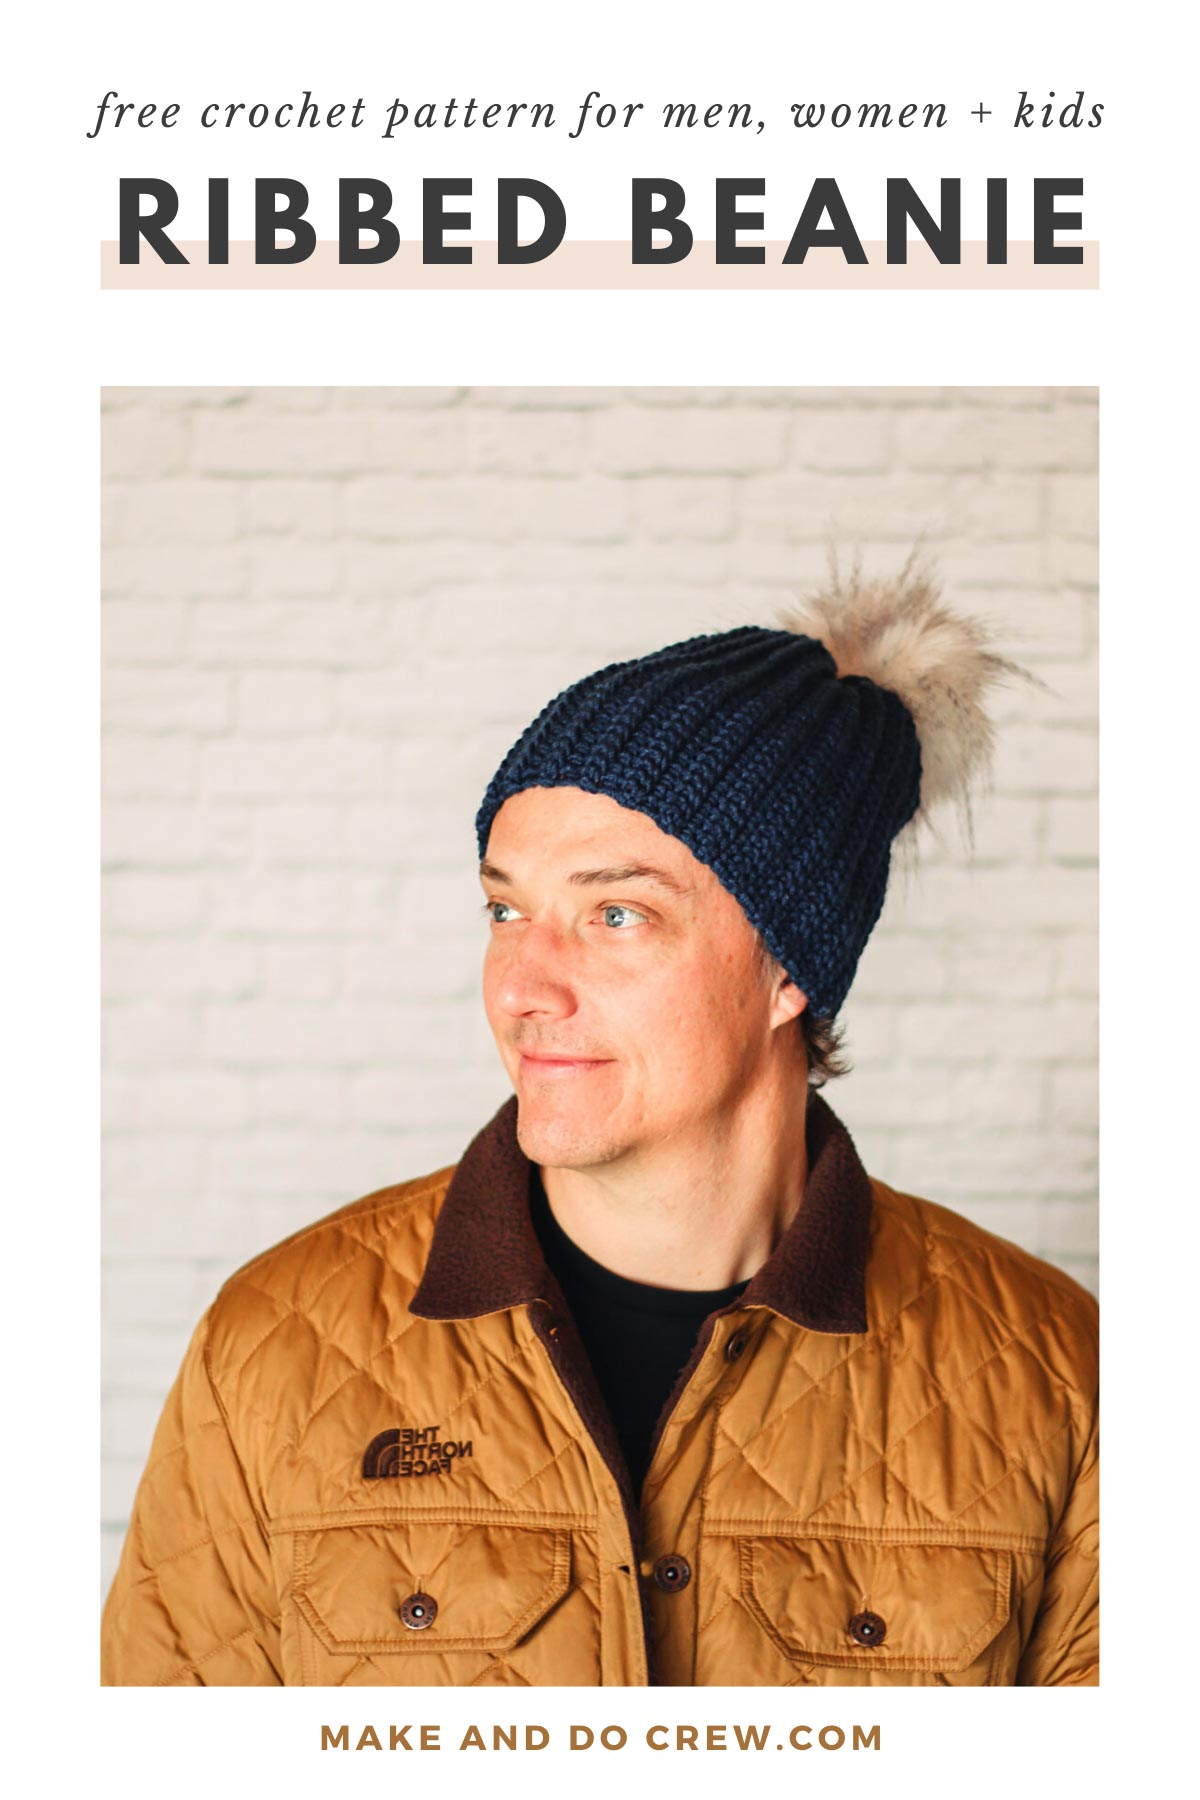 Rugged man wearing a modern, ribbed crochet hat made from Lion Brand Color Made Easy Yarn.